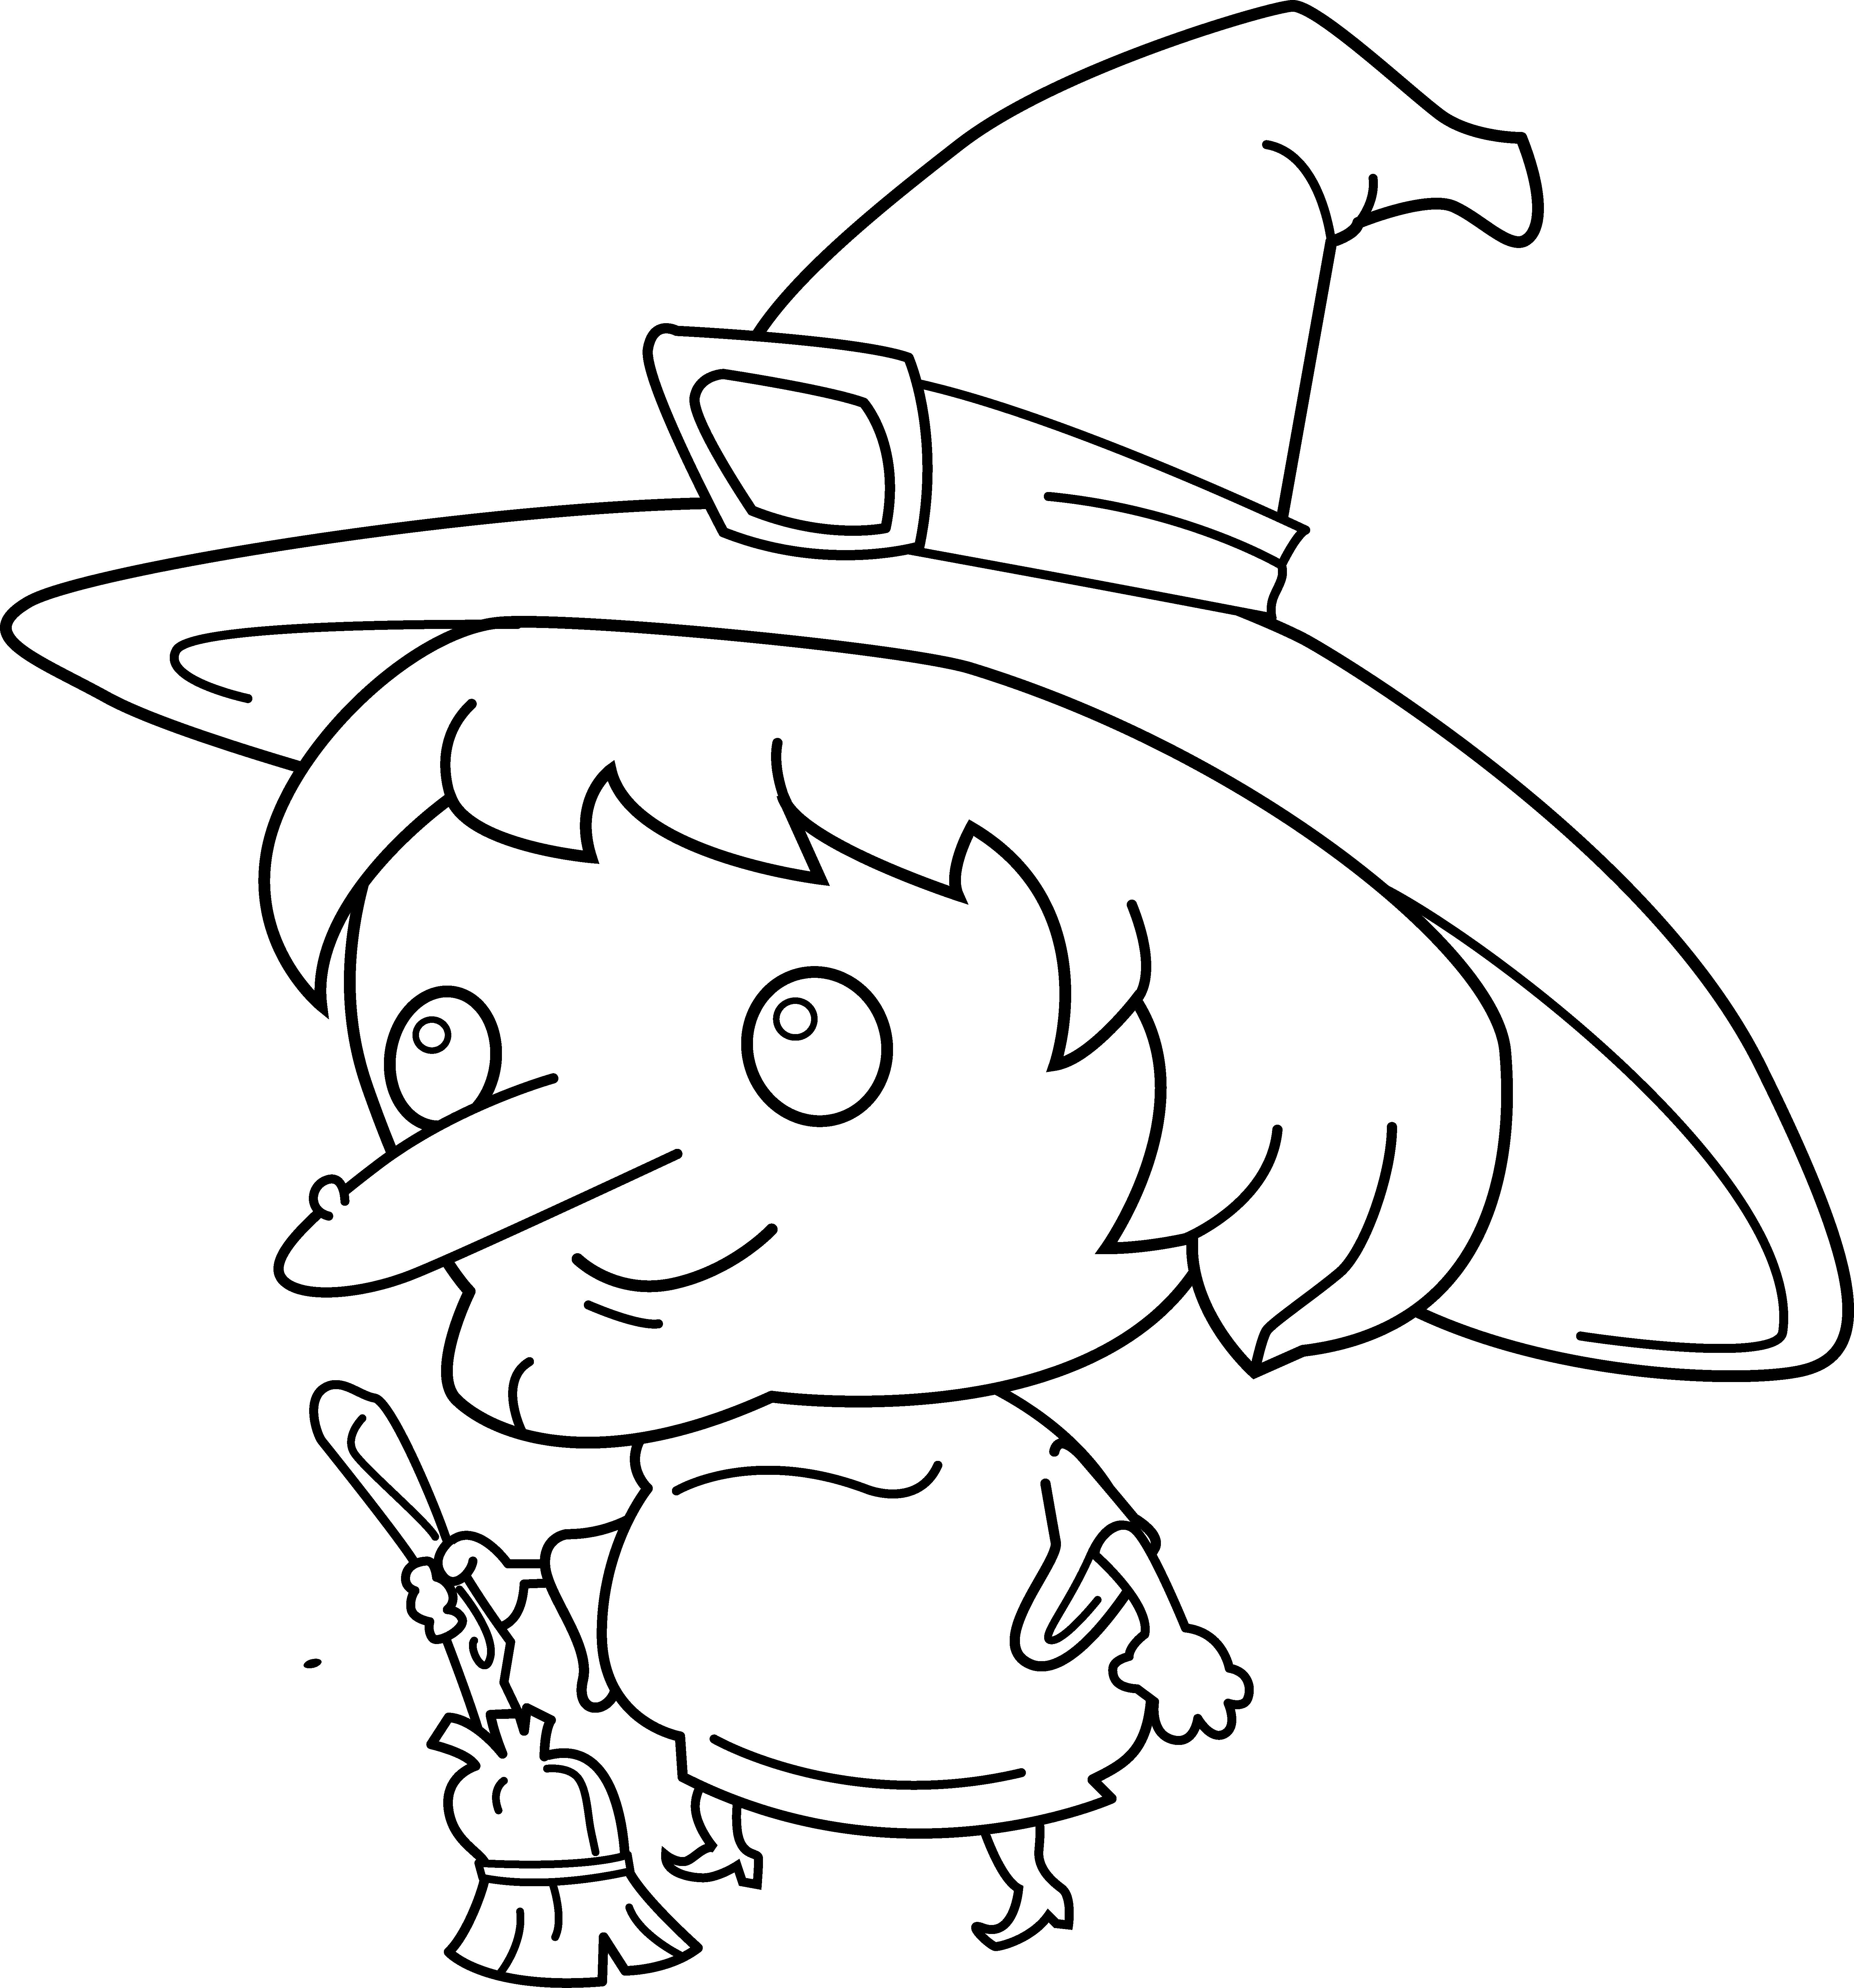 Cute Witch Drawing at GetDrawings.com | Free for personal use Cute ...